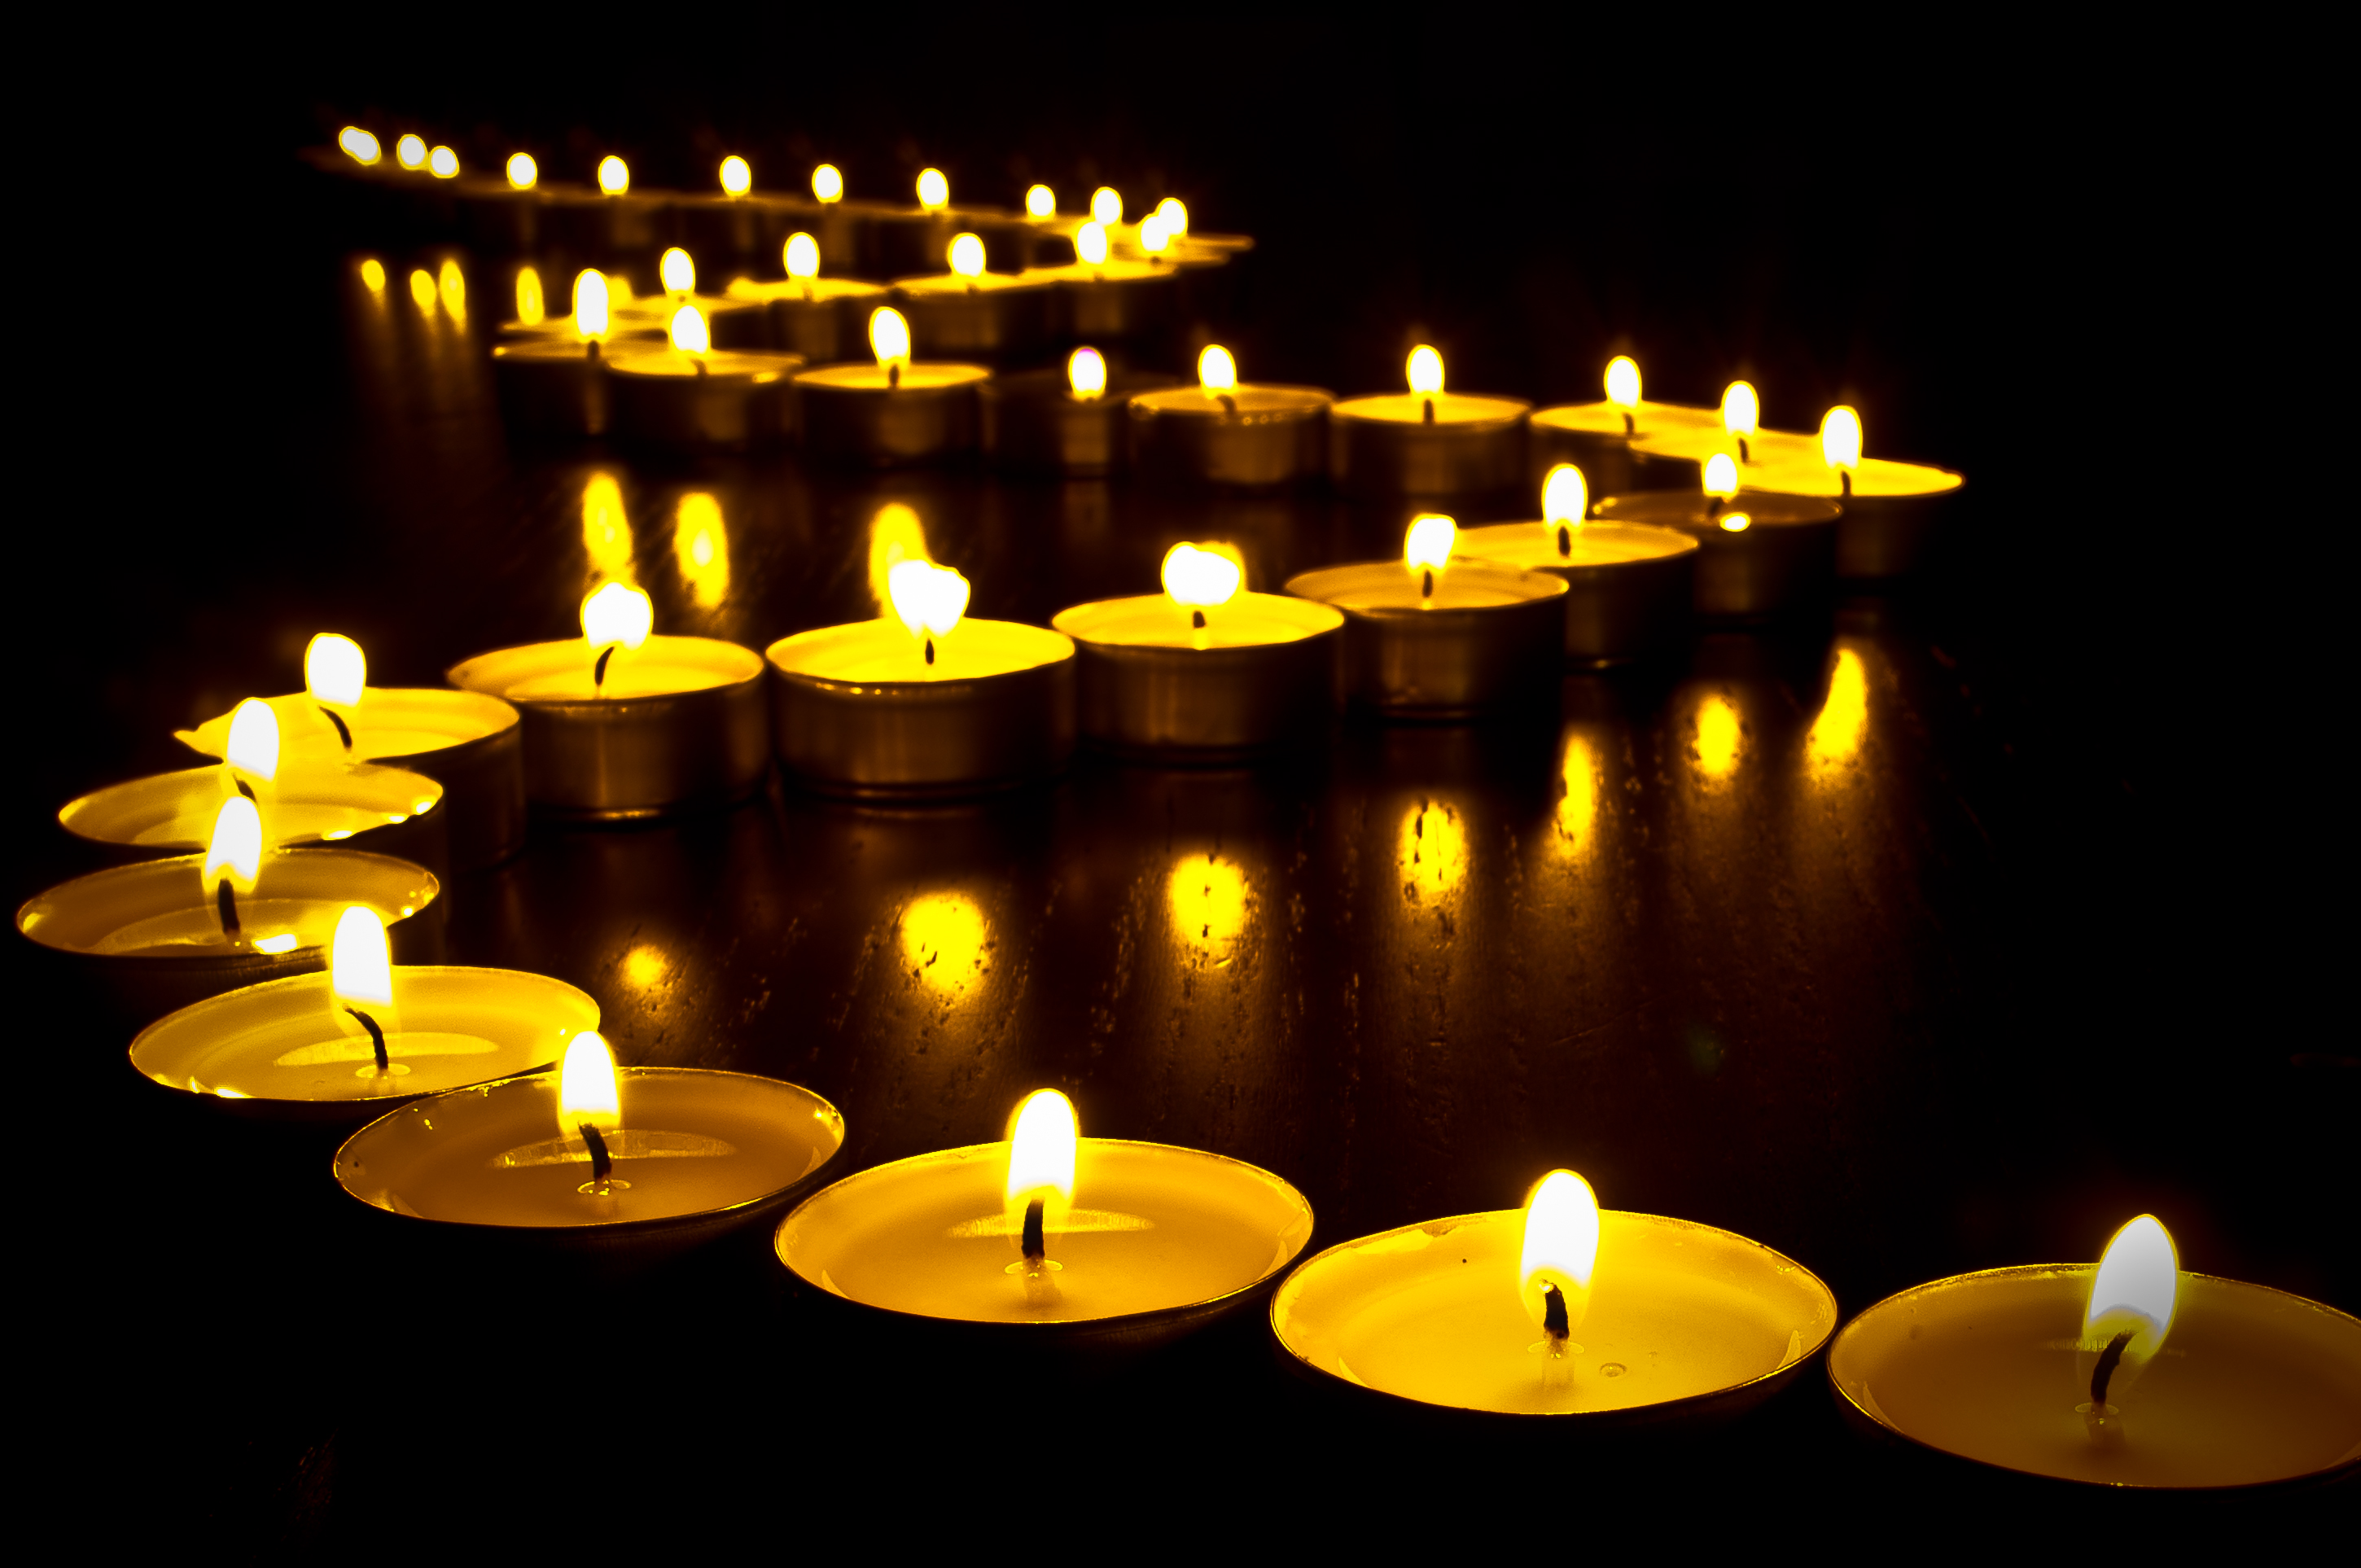 Animated Diwali Diya Wallpapers 45 Beautiful Hd Diwali Images And Wallpaper To Feel The